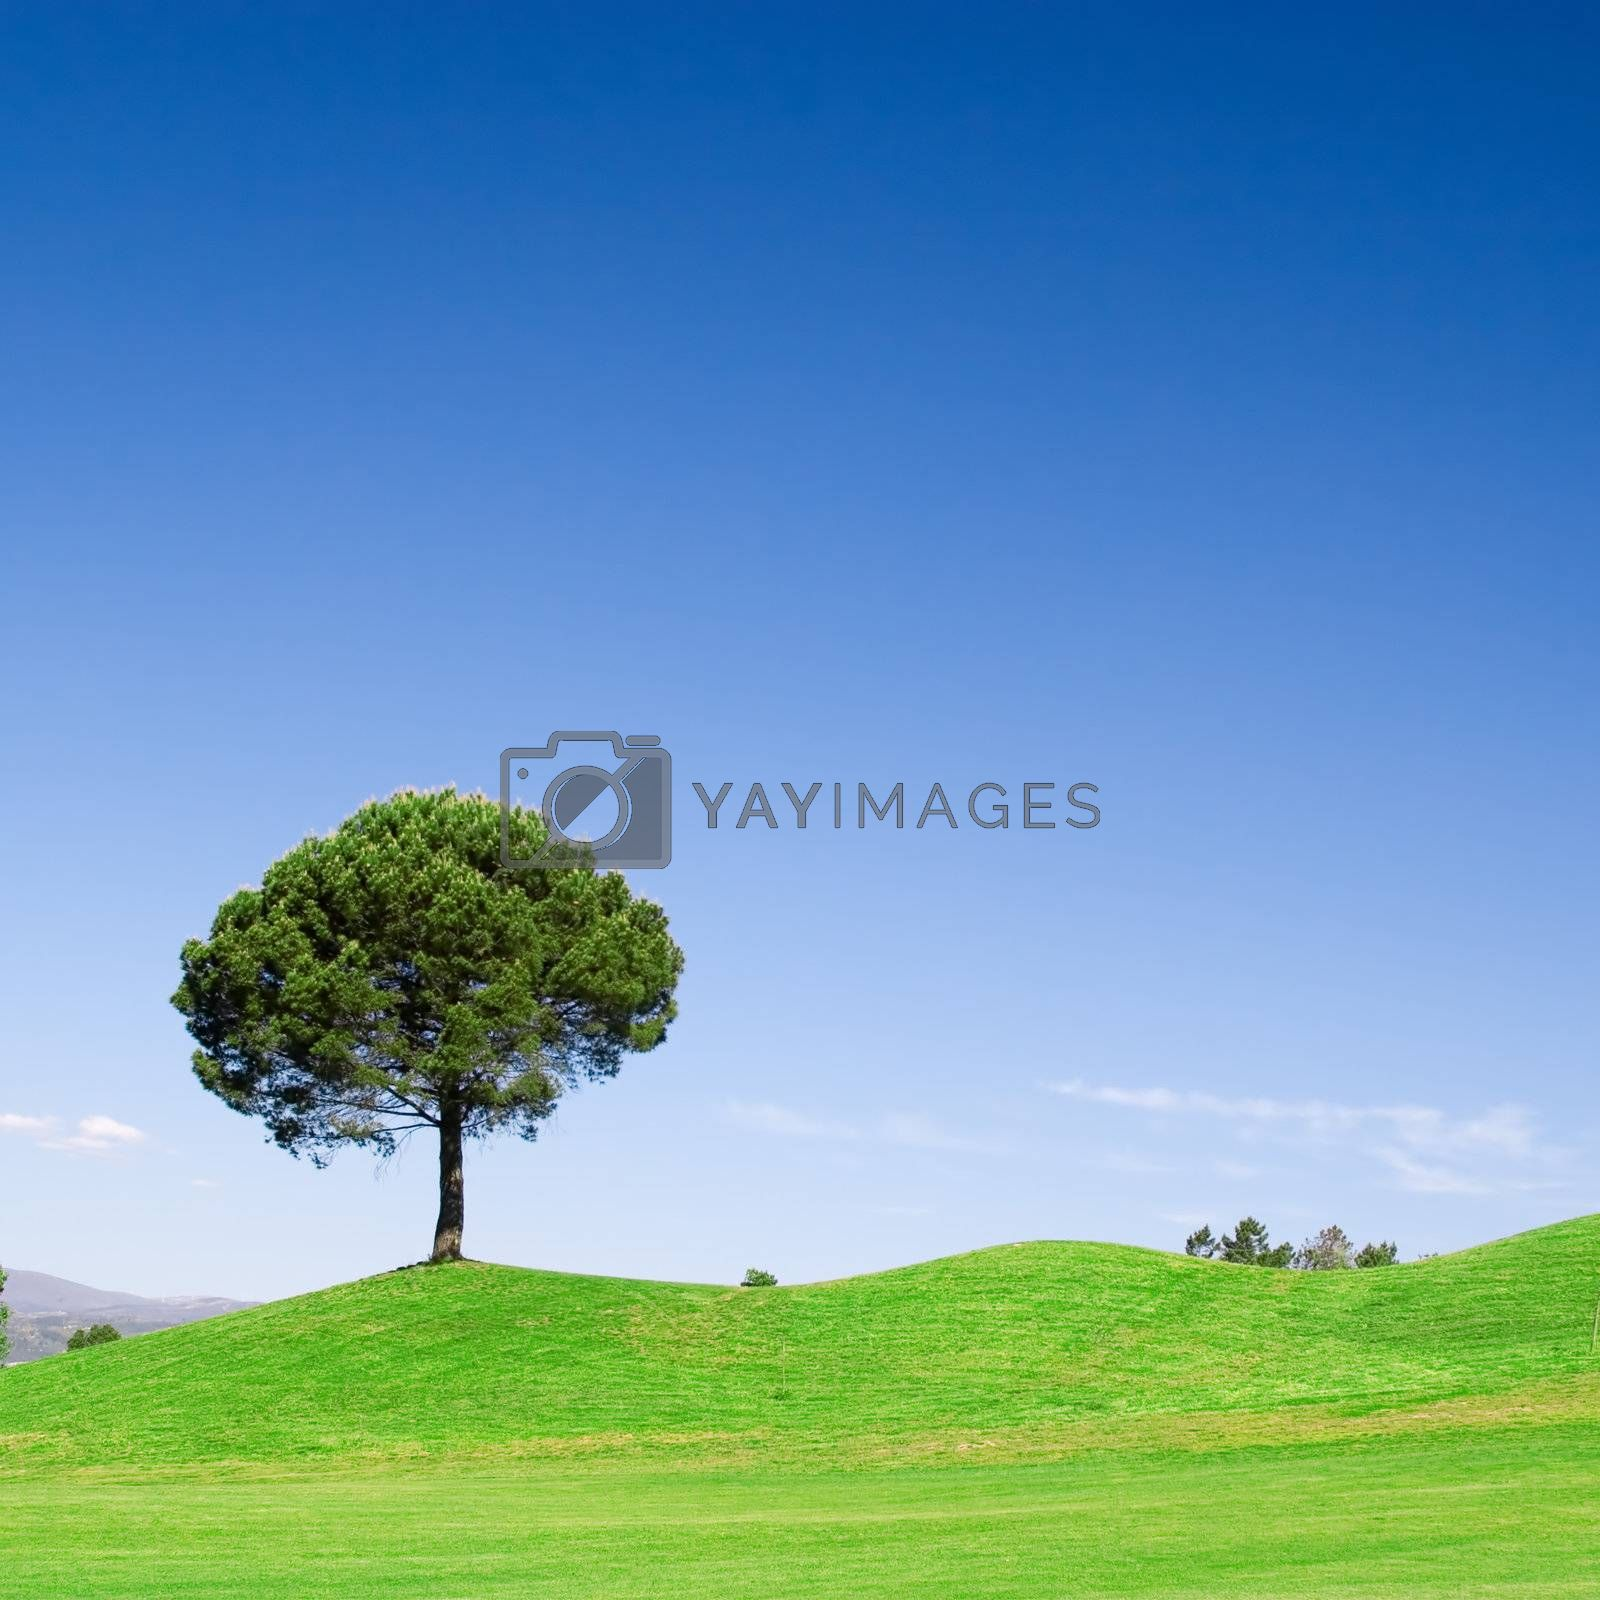 Royalty free image of Tree by ajn